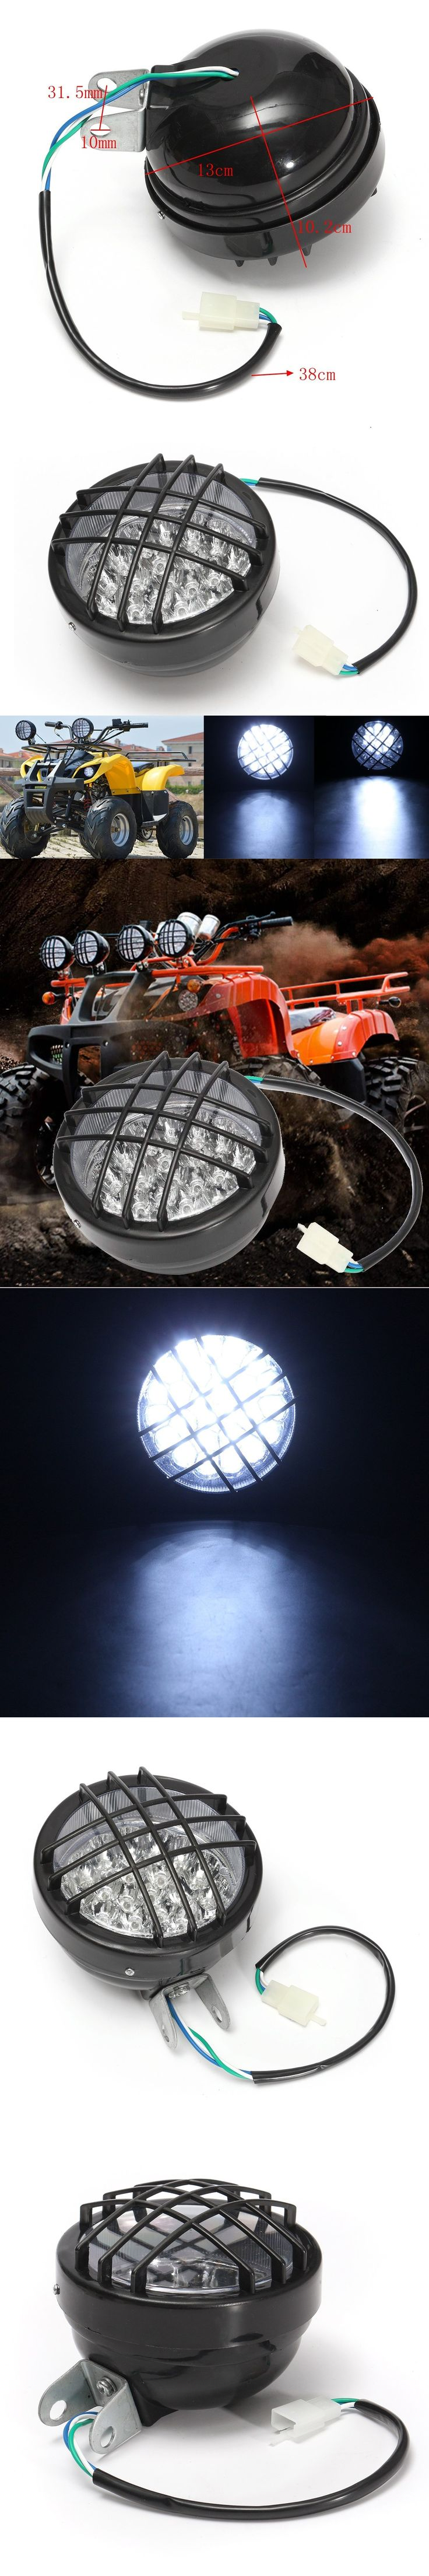 12V Front 27 LED Motorbike ATV Headlight Fog Lamp Spotlight For ATV Quad 4 Wheeler Go Kart Roketa SunL Taotao